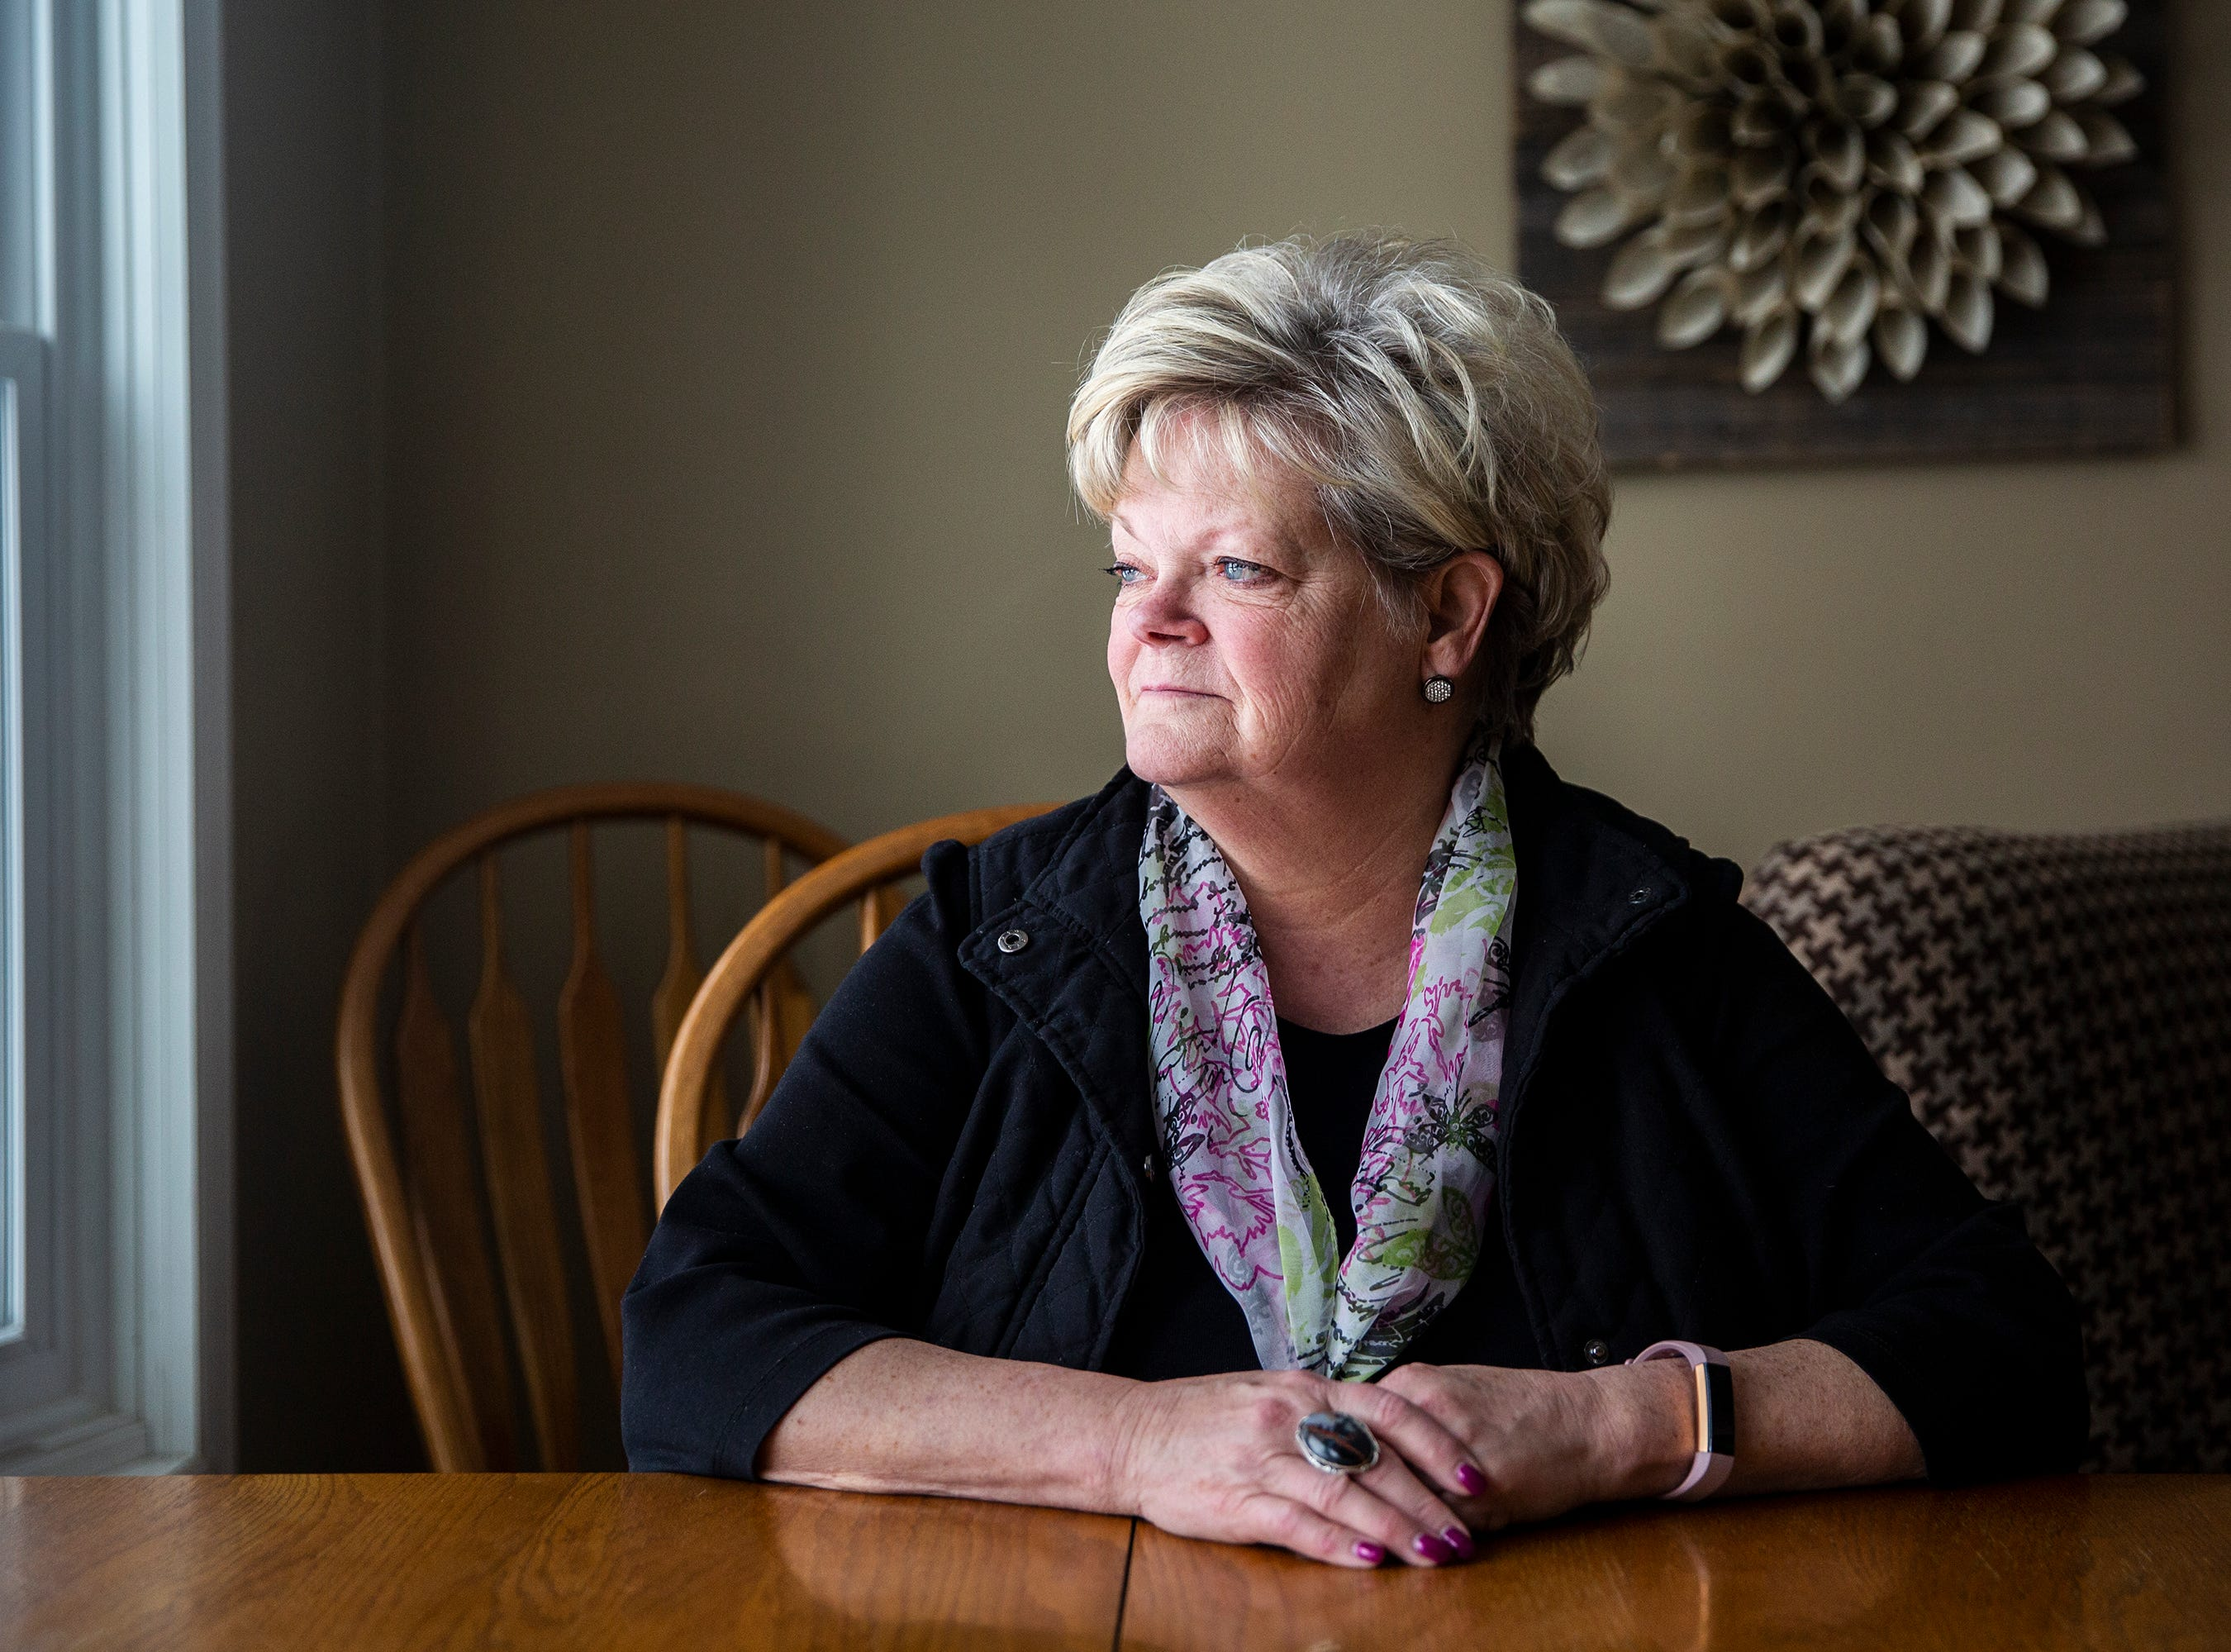 Kathy King looks out the window of her home on Thursday, March 7, 2019, in Glenwood. King worked at the Glenwood Resource Center for 43 years, most recently as a treatment program administrator. The resource center is one of two facilities in Iowa serving people with 